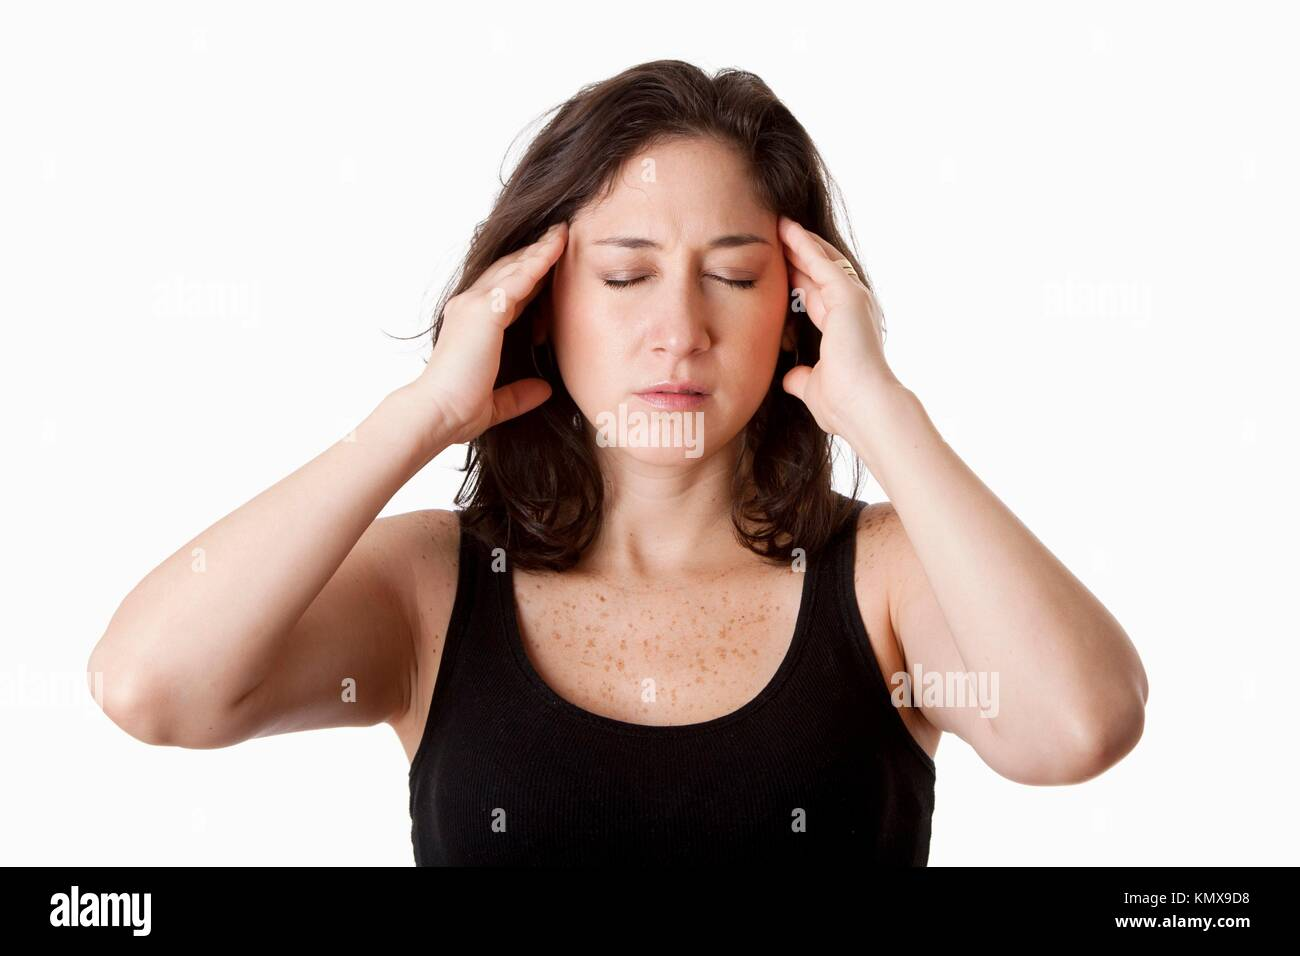 Face of beautiful young attractive woman with headcahe migraine unwell expression feeling sick, holding her head, - Stock Image